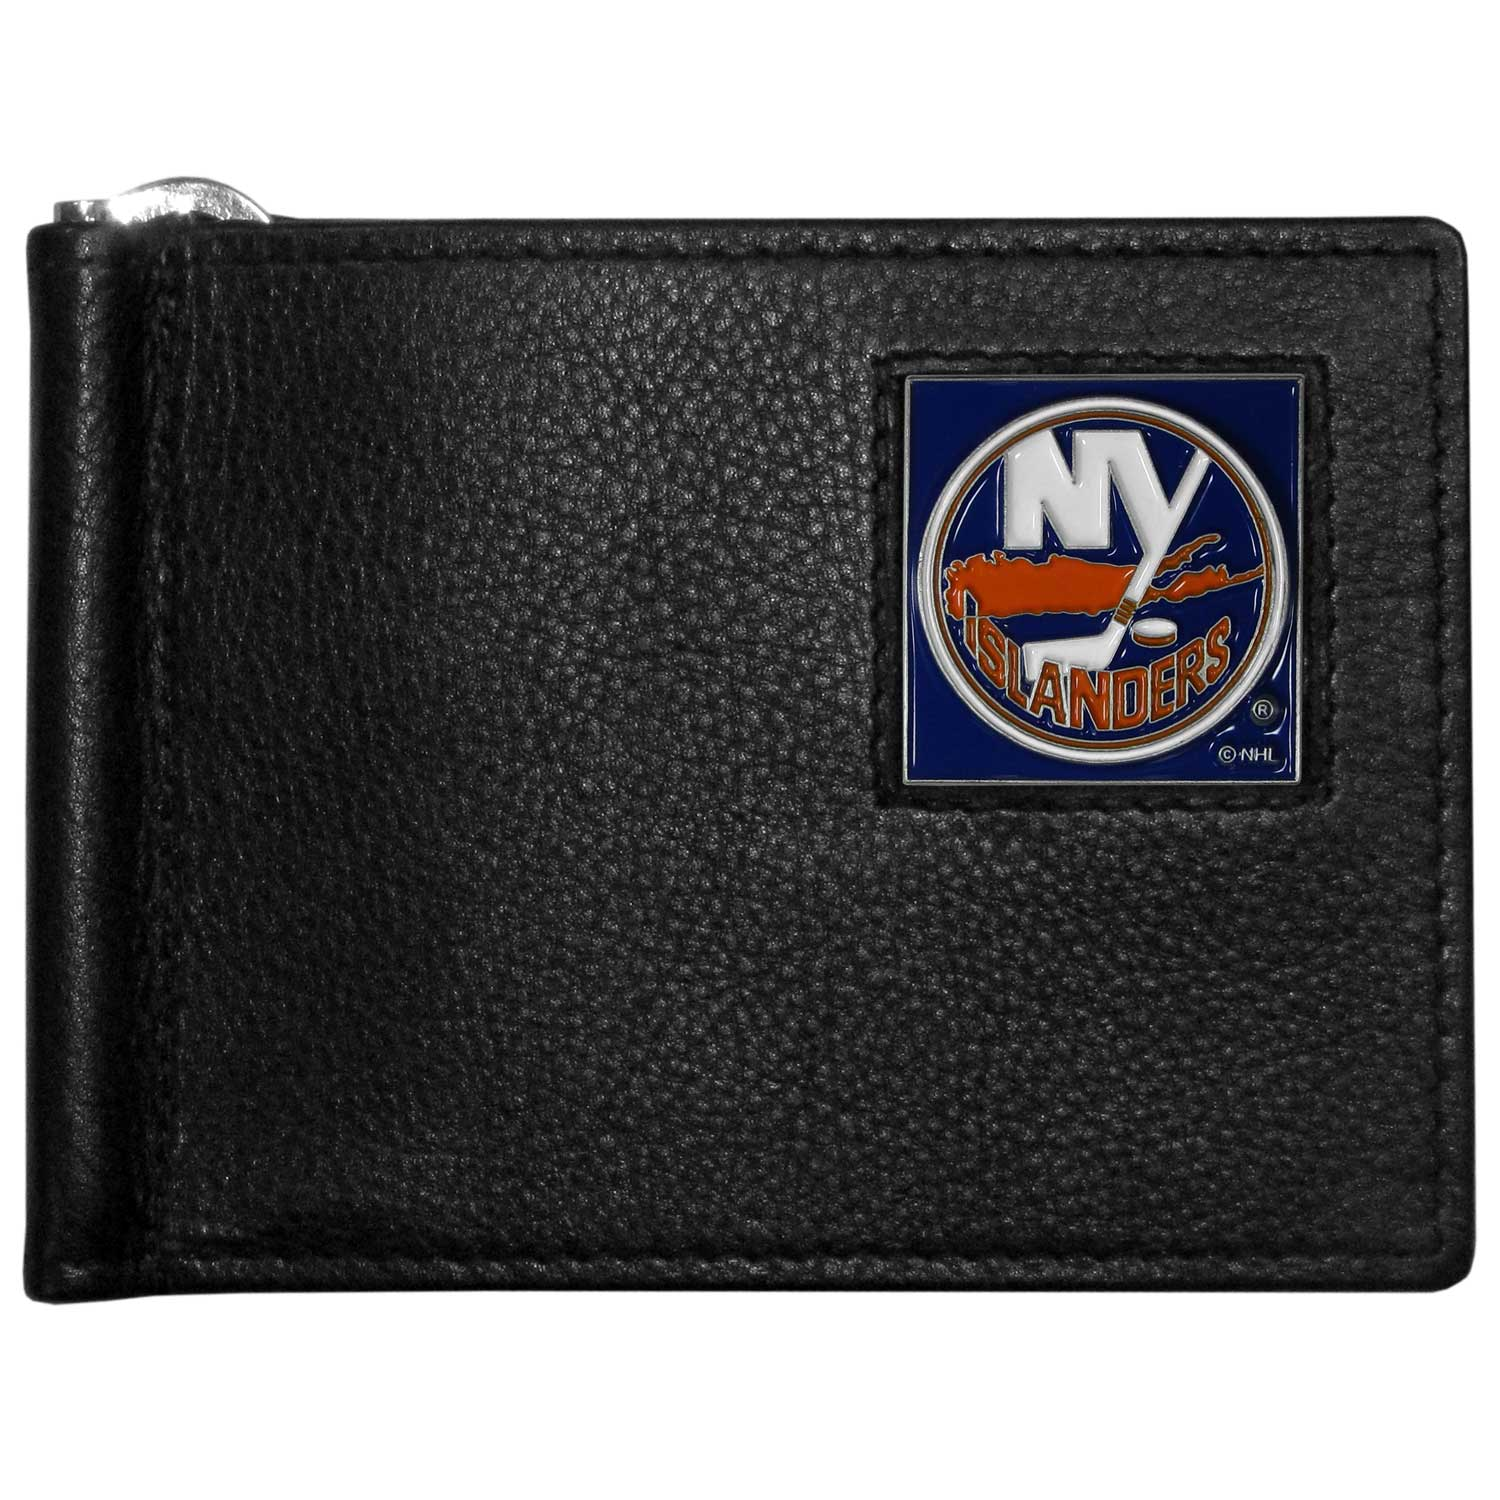 New York Islanders® Leather Bill Clip Wallet - This cool new style wallet features an inner, metal bill clip that lips up for easy access. The super slim wallet holds tons of stuff with ample pockets, credit card slots & windowed ID slot. The wallet is made of genuine fine grain leather and it finished with a metal New York Islanders® emblem. The wallet is shipped in gift box packaging.